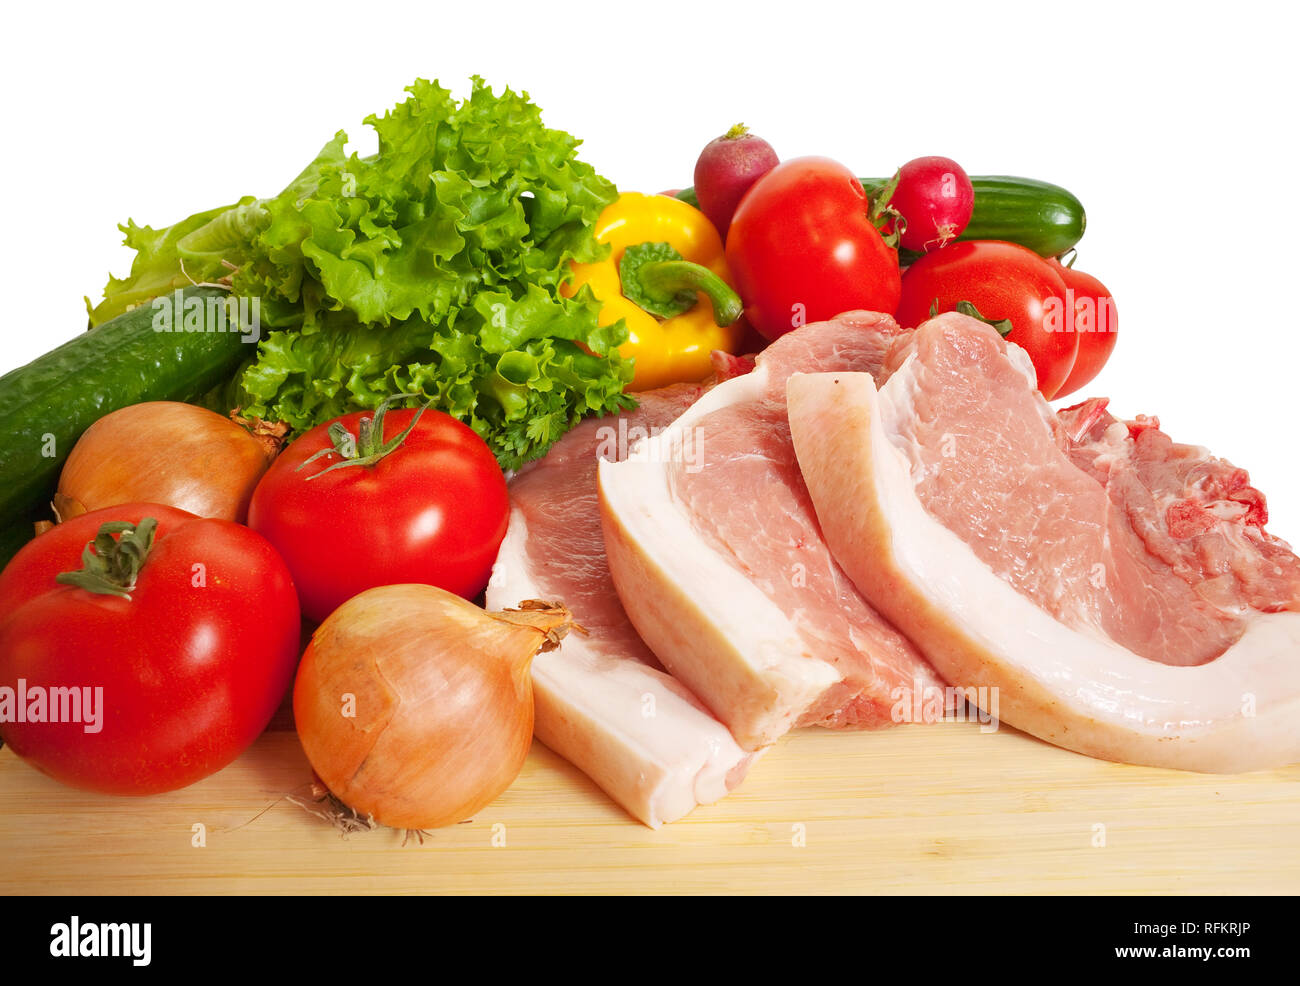 Raw pork and vegetables. Isolated over white Stock Photo